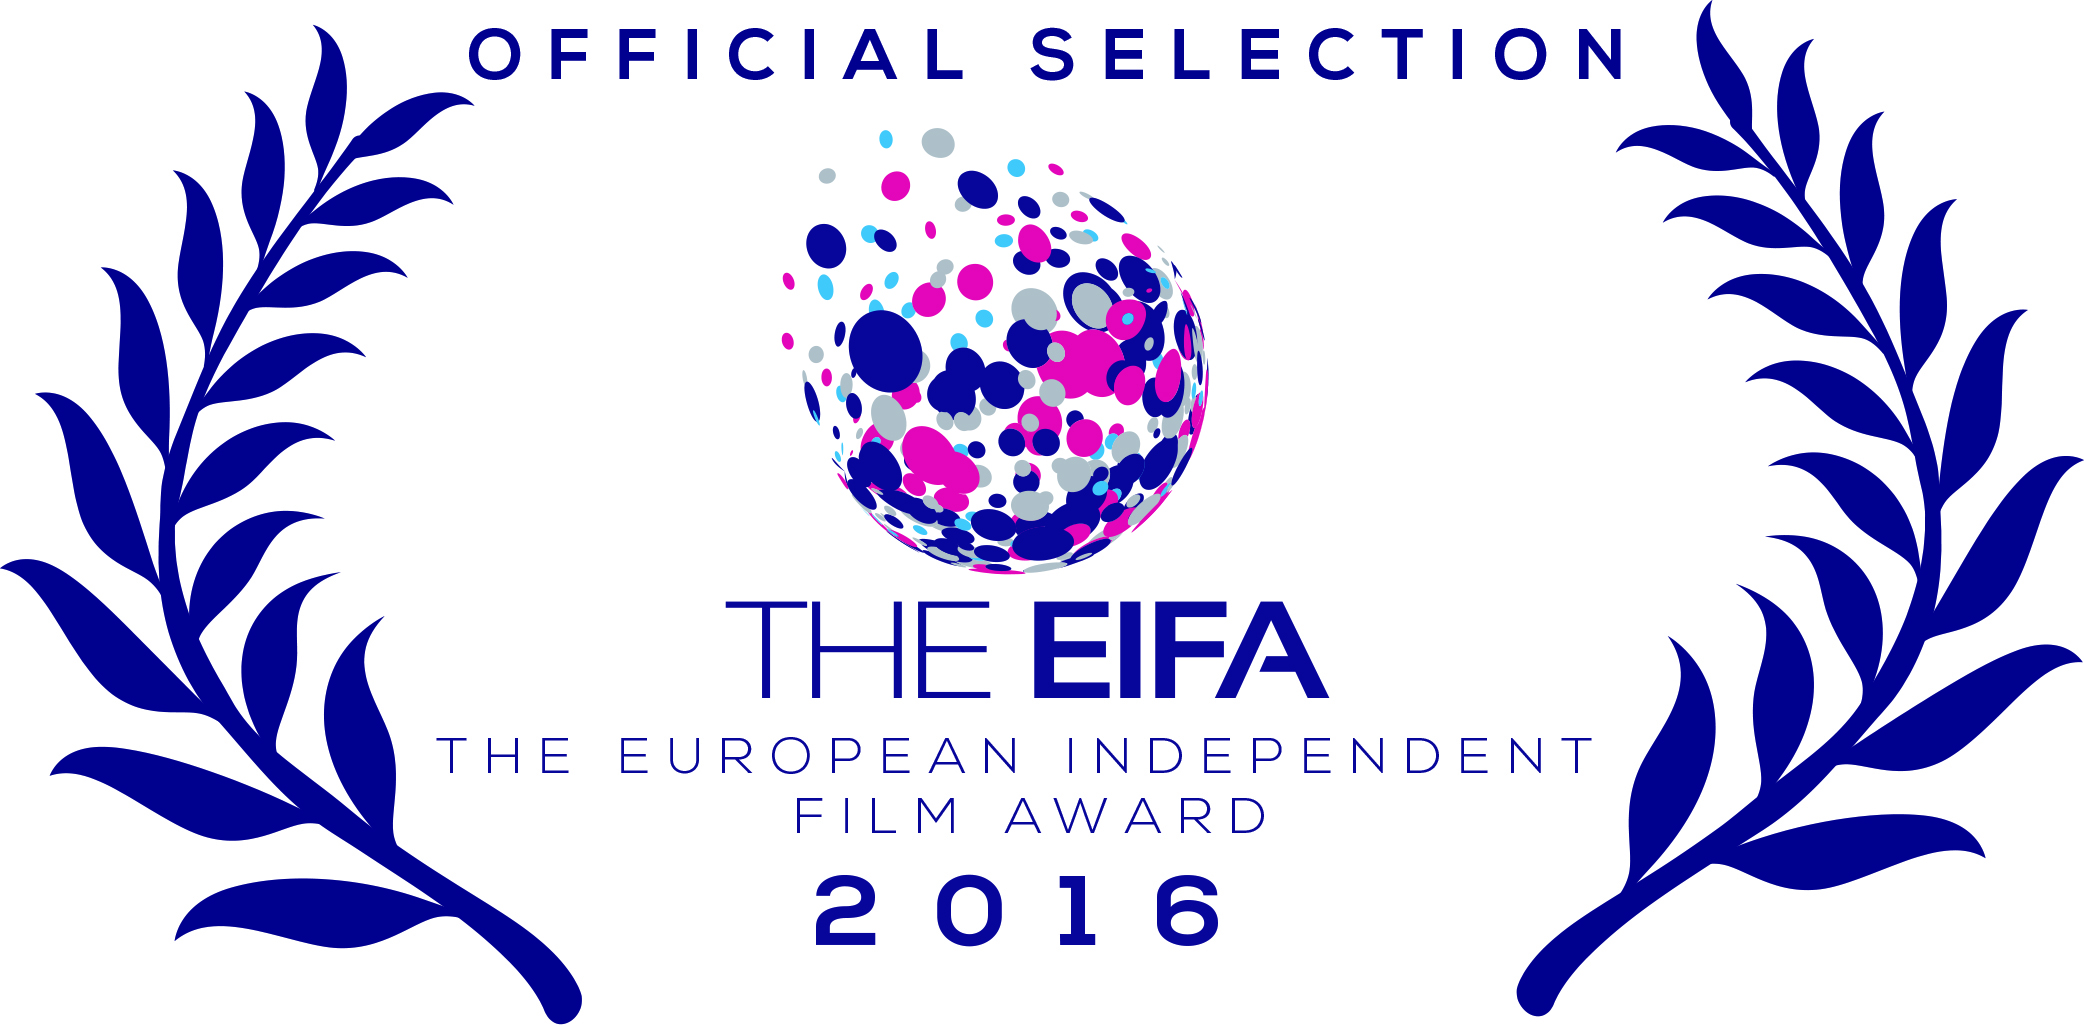 Laurel_European_Film_Award_Official Selection Laurel copy.jpg